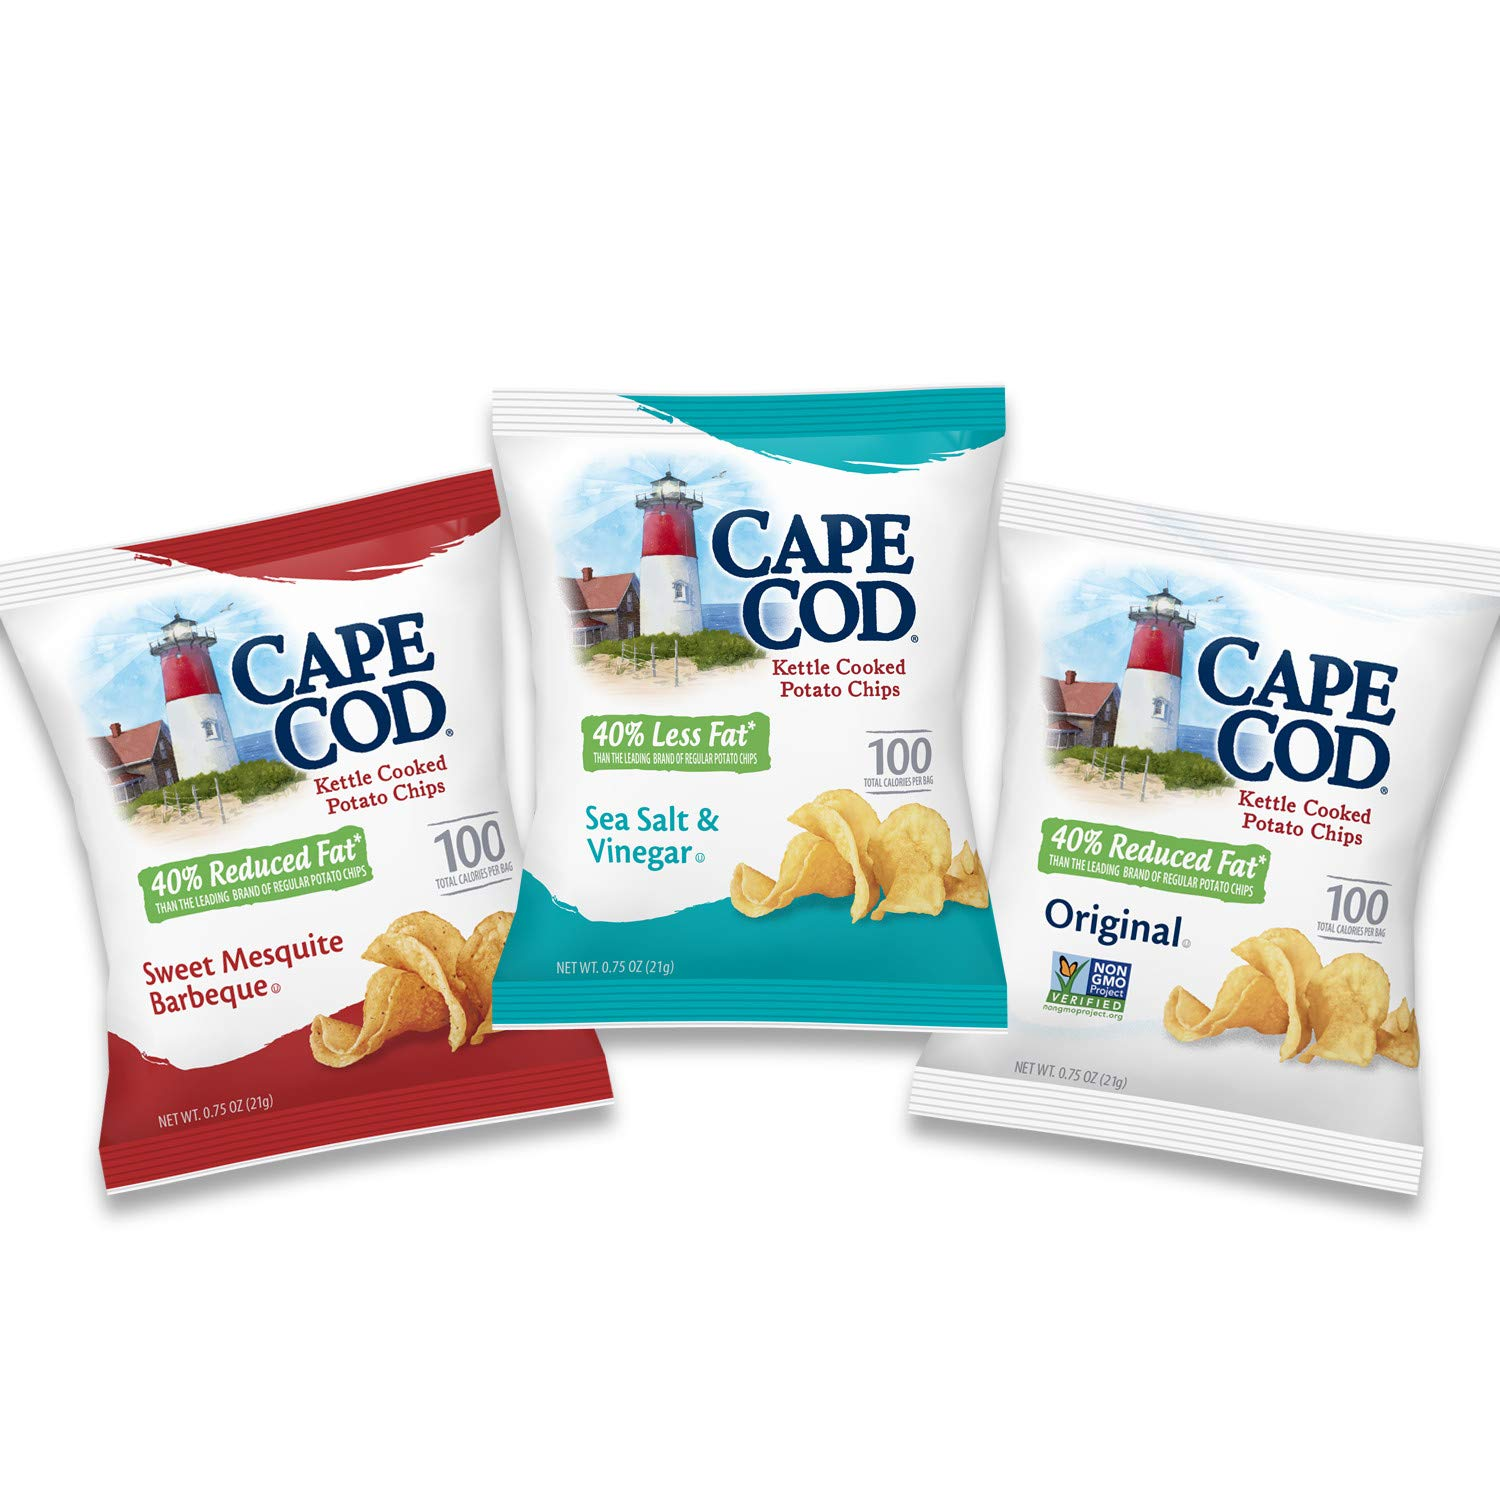 Cape Cod Potato Chips, Reduced Fat Kettle Cooked Chips, Variety Pack, 30 Count